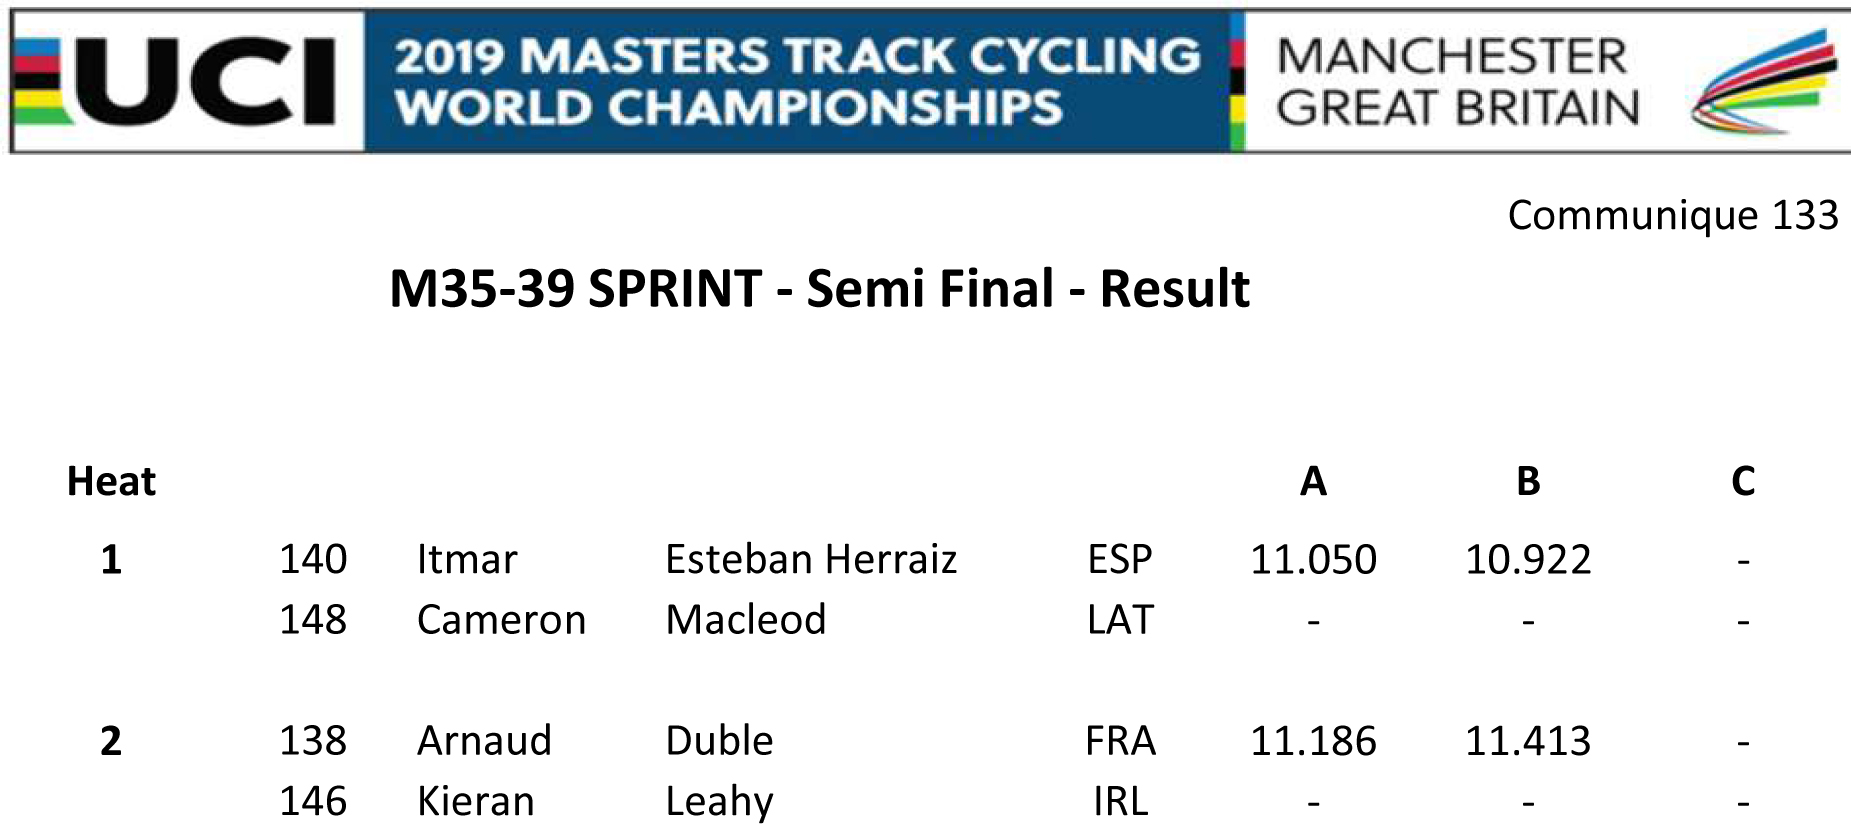 M3539 SPRINT SF RESULT